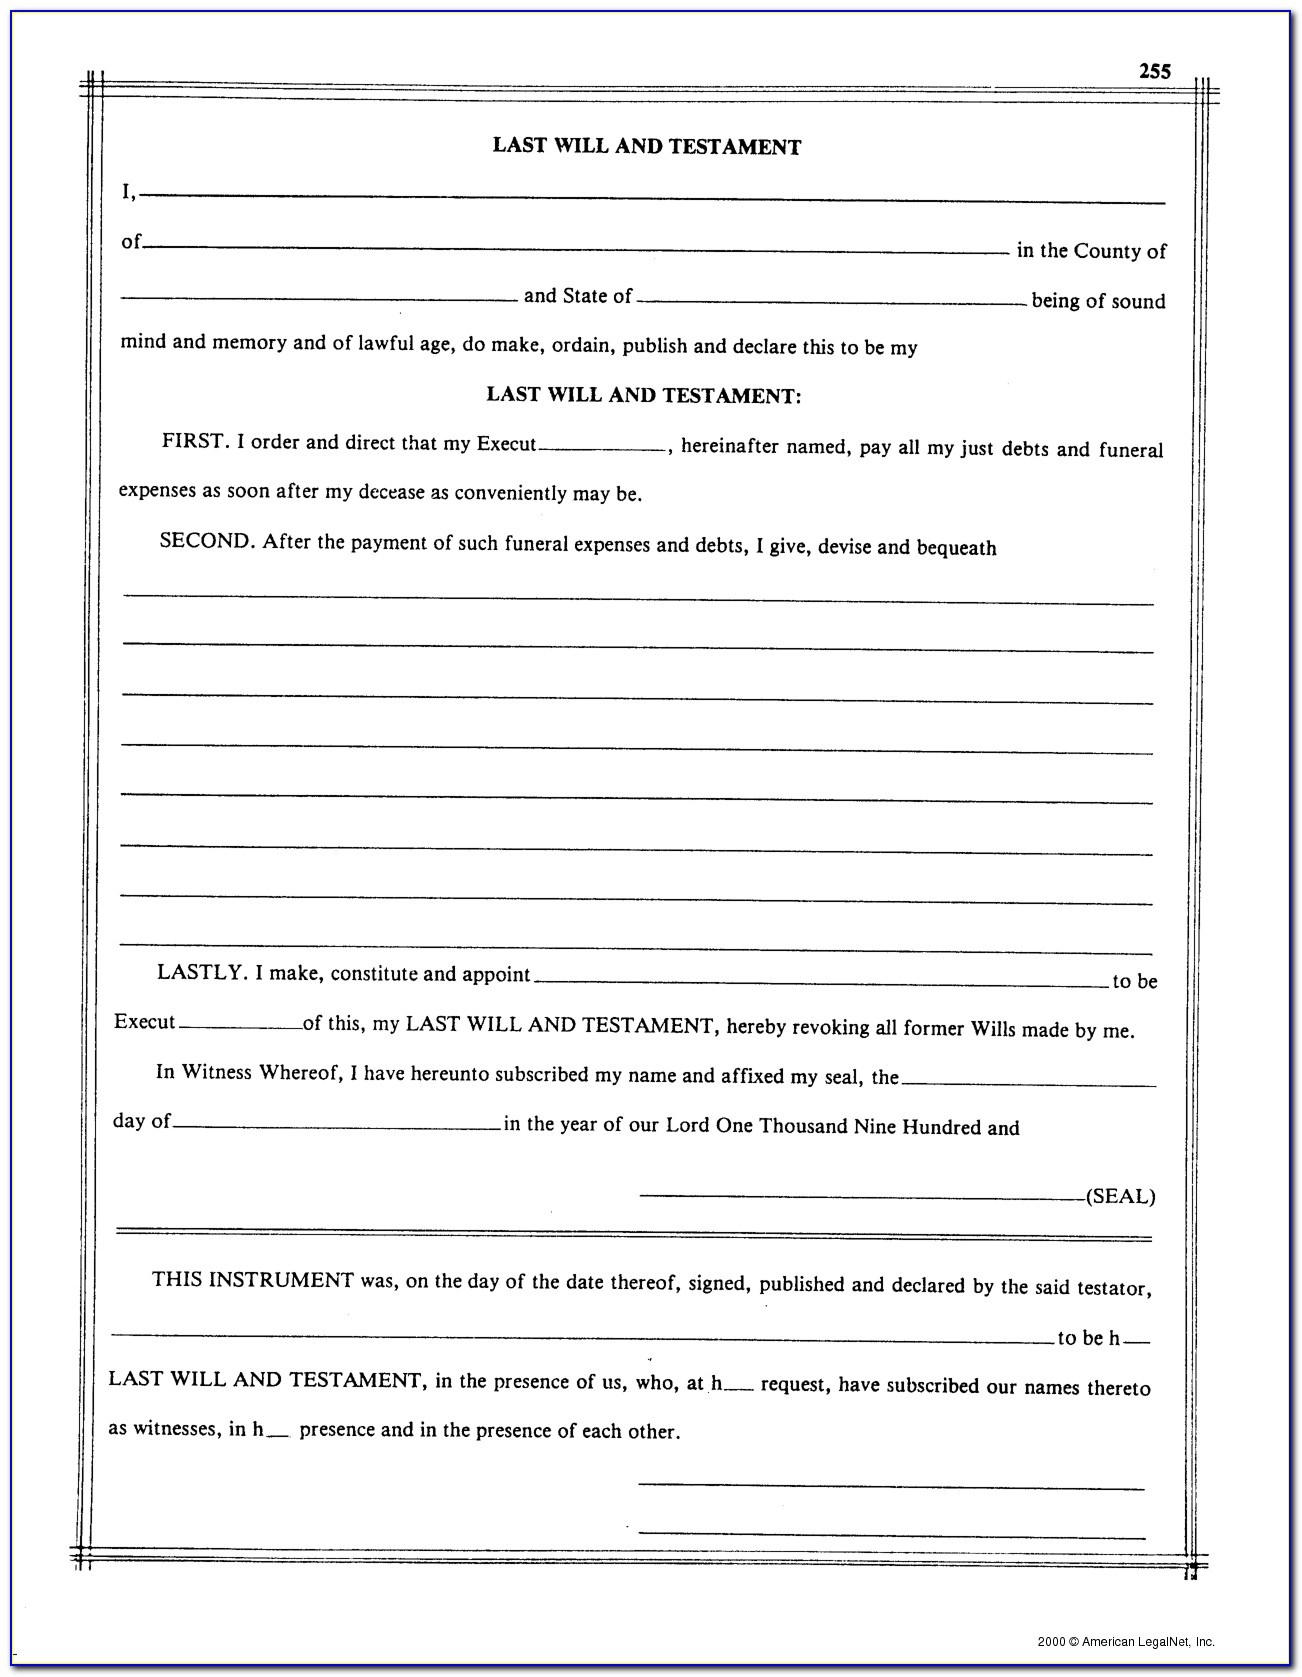 Free Printable Blank Last Will And Testament Forms - Form : Resume - Free Printable Blank Last Will And Testament